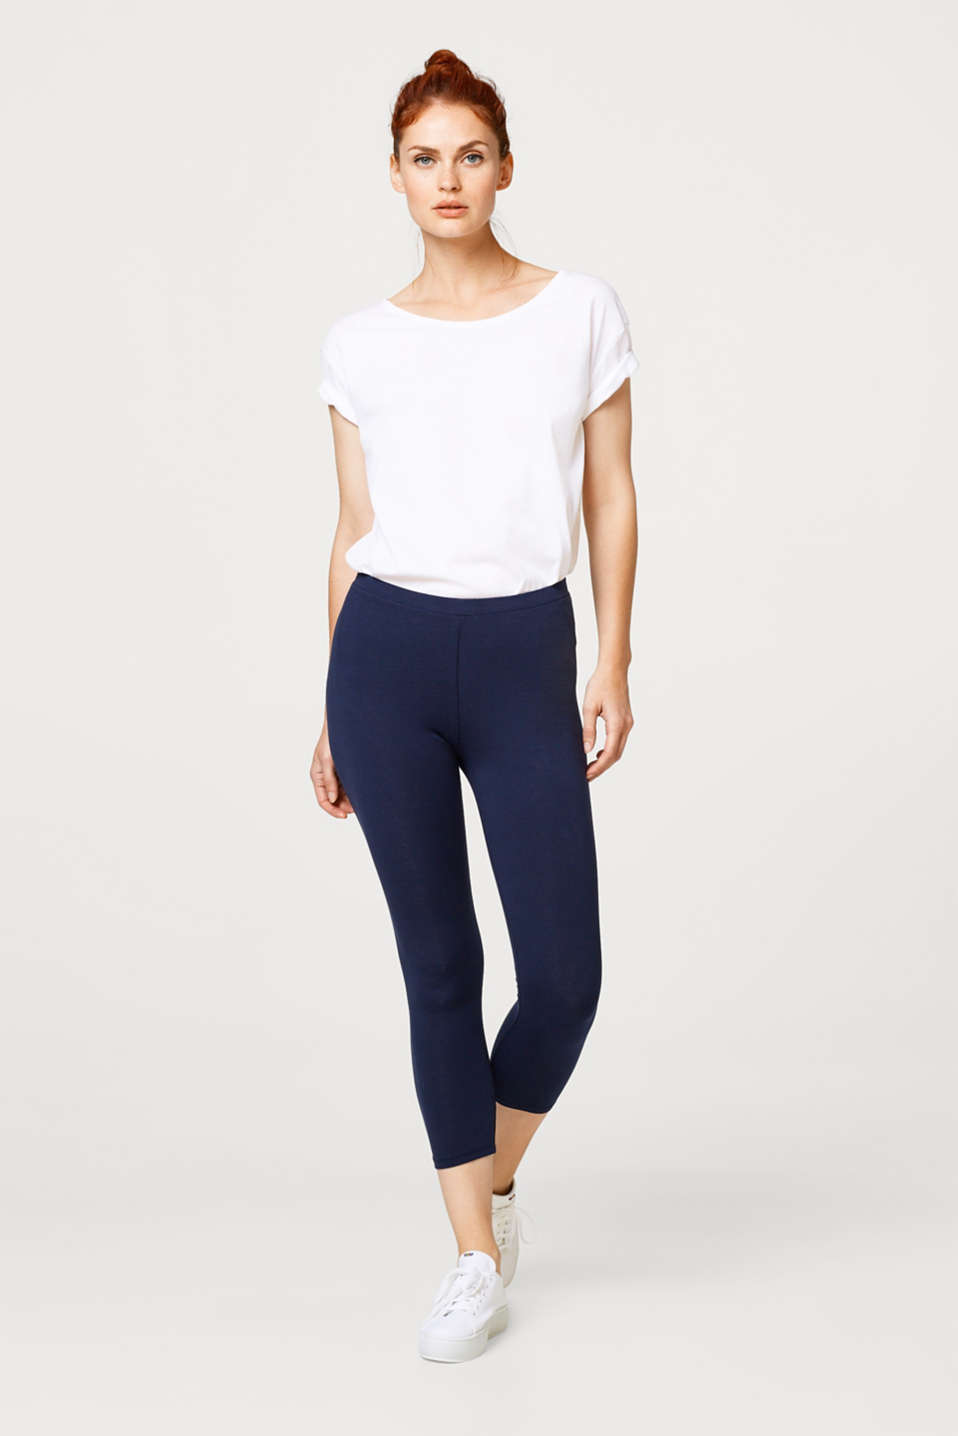 edc - Basic Capri leggings